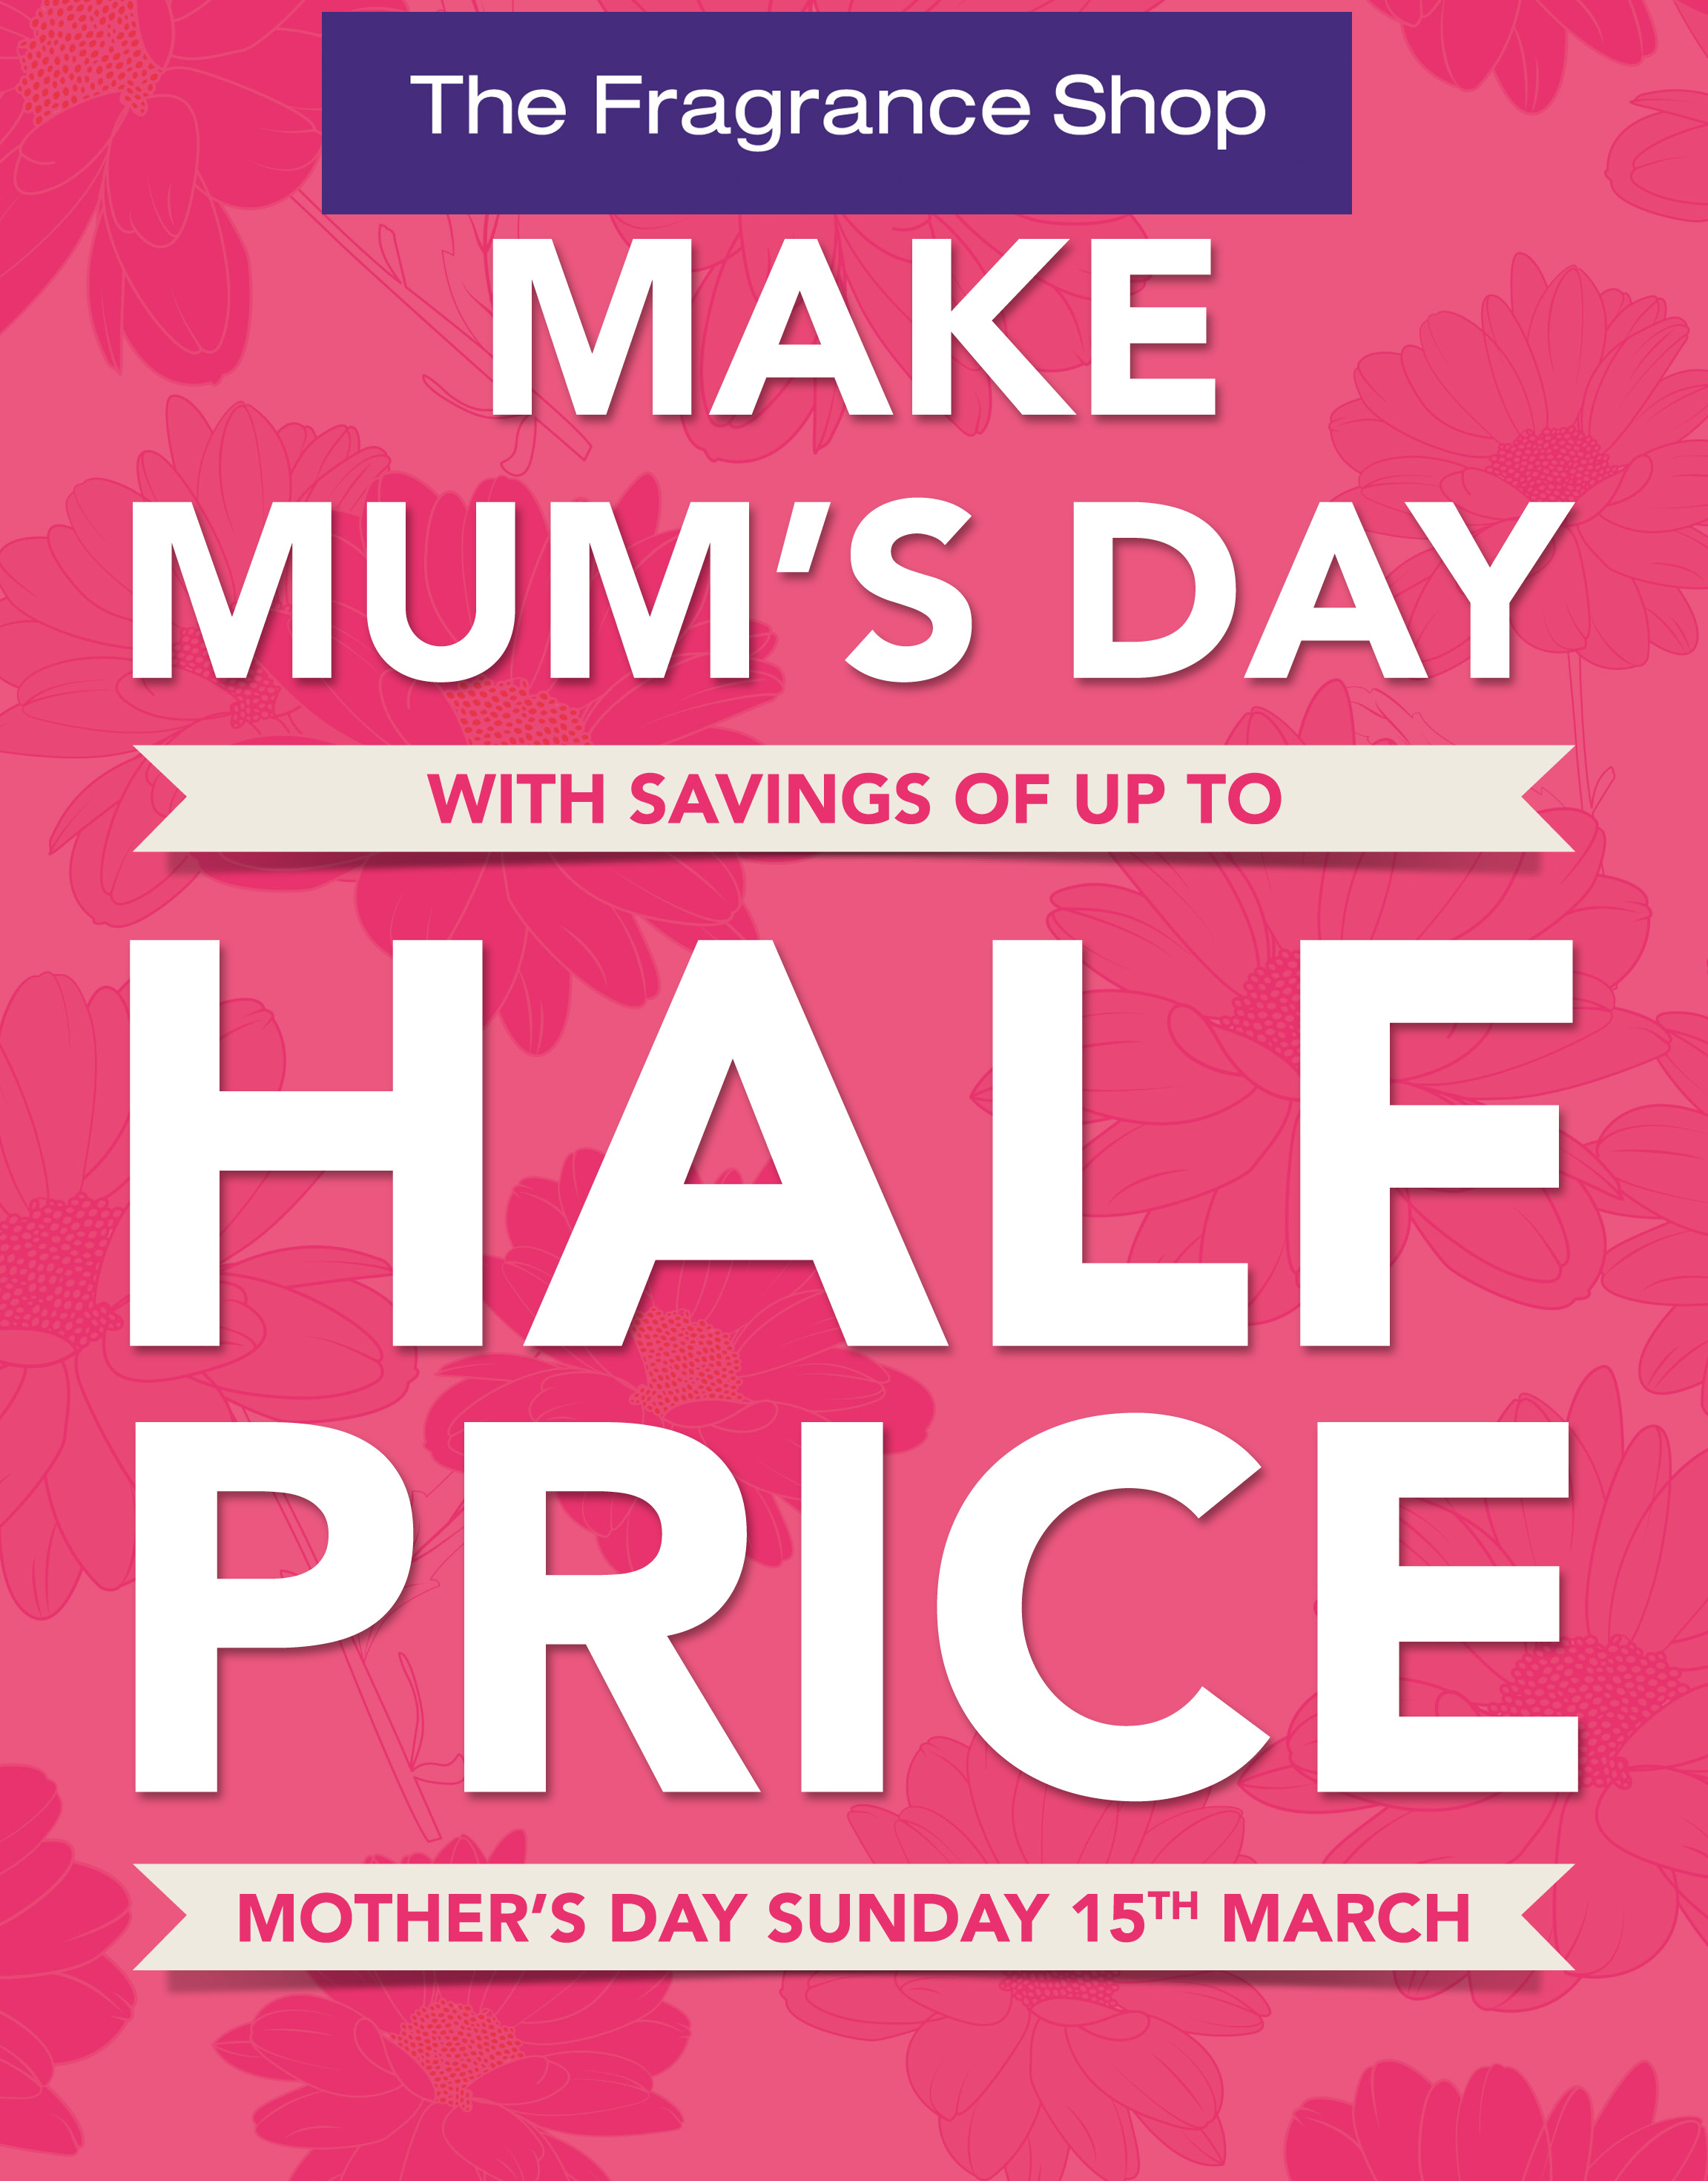 Mothers Day treat from The Fragrance Shop, West Bromwich